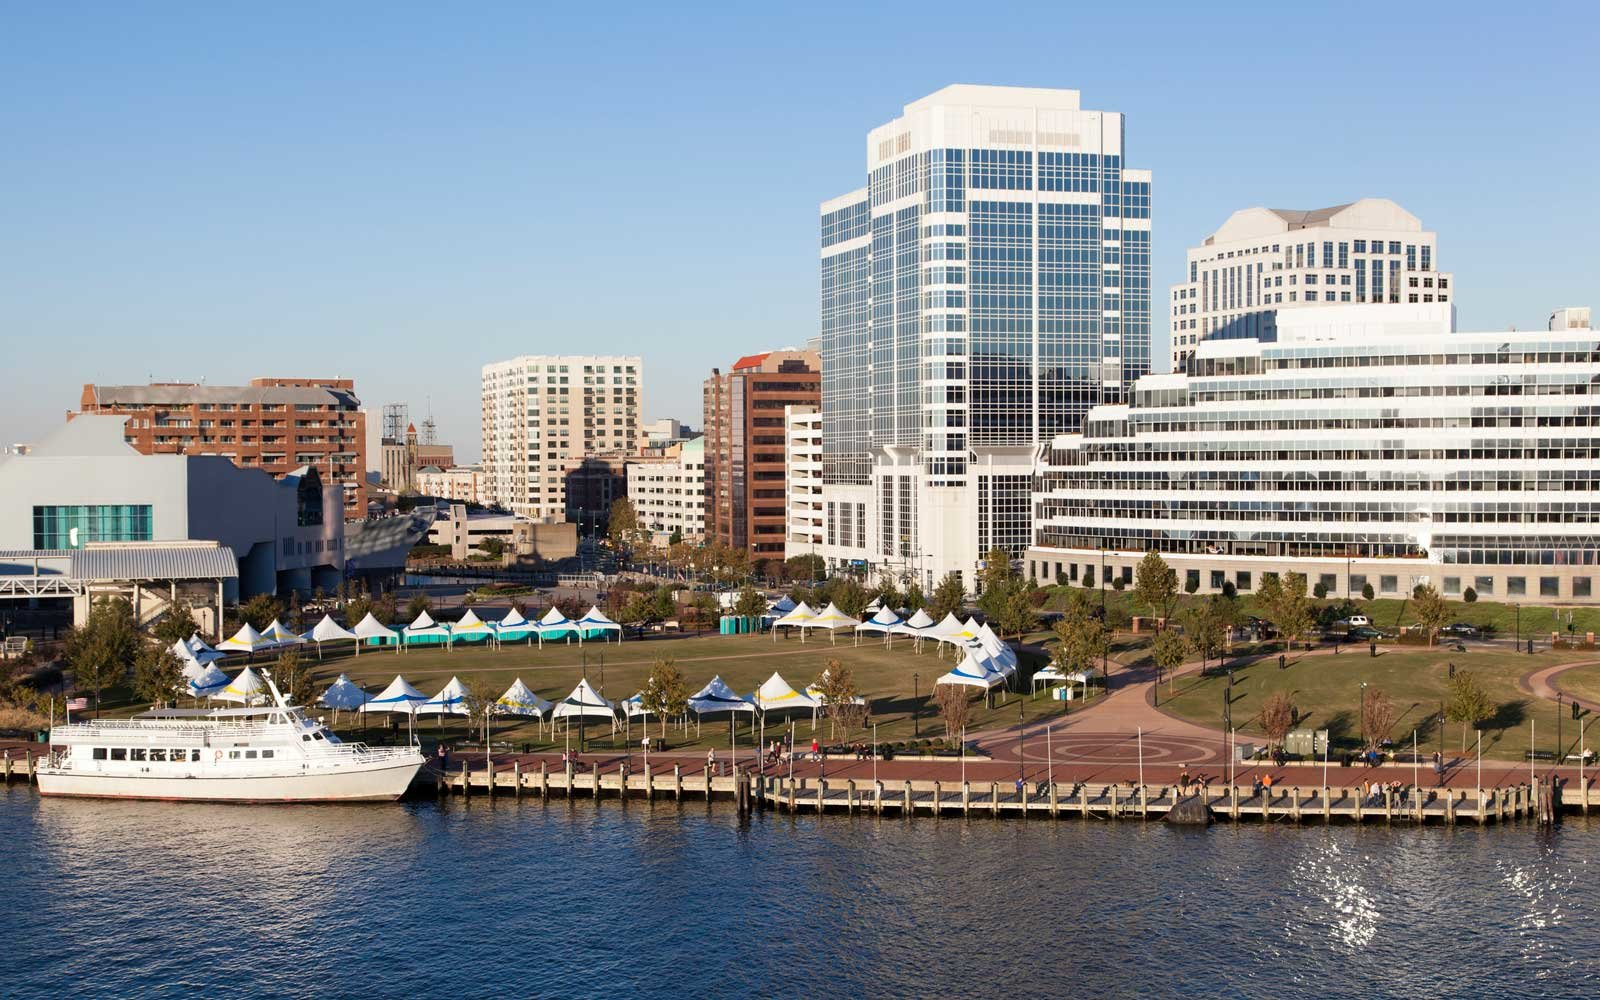 The Norfolk, Virginia harbor